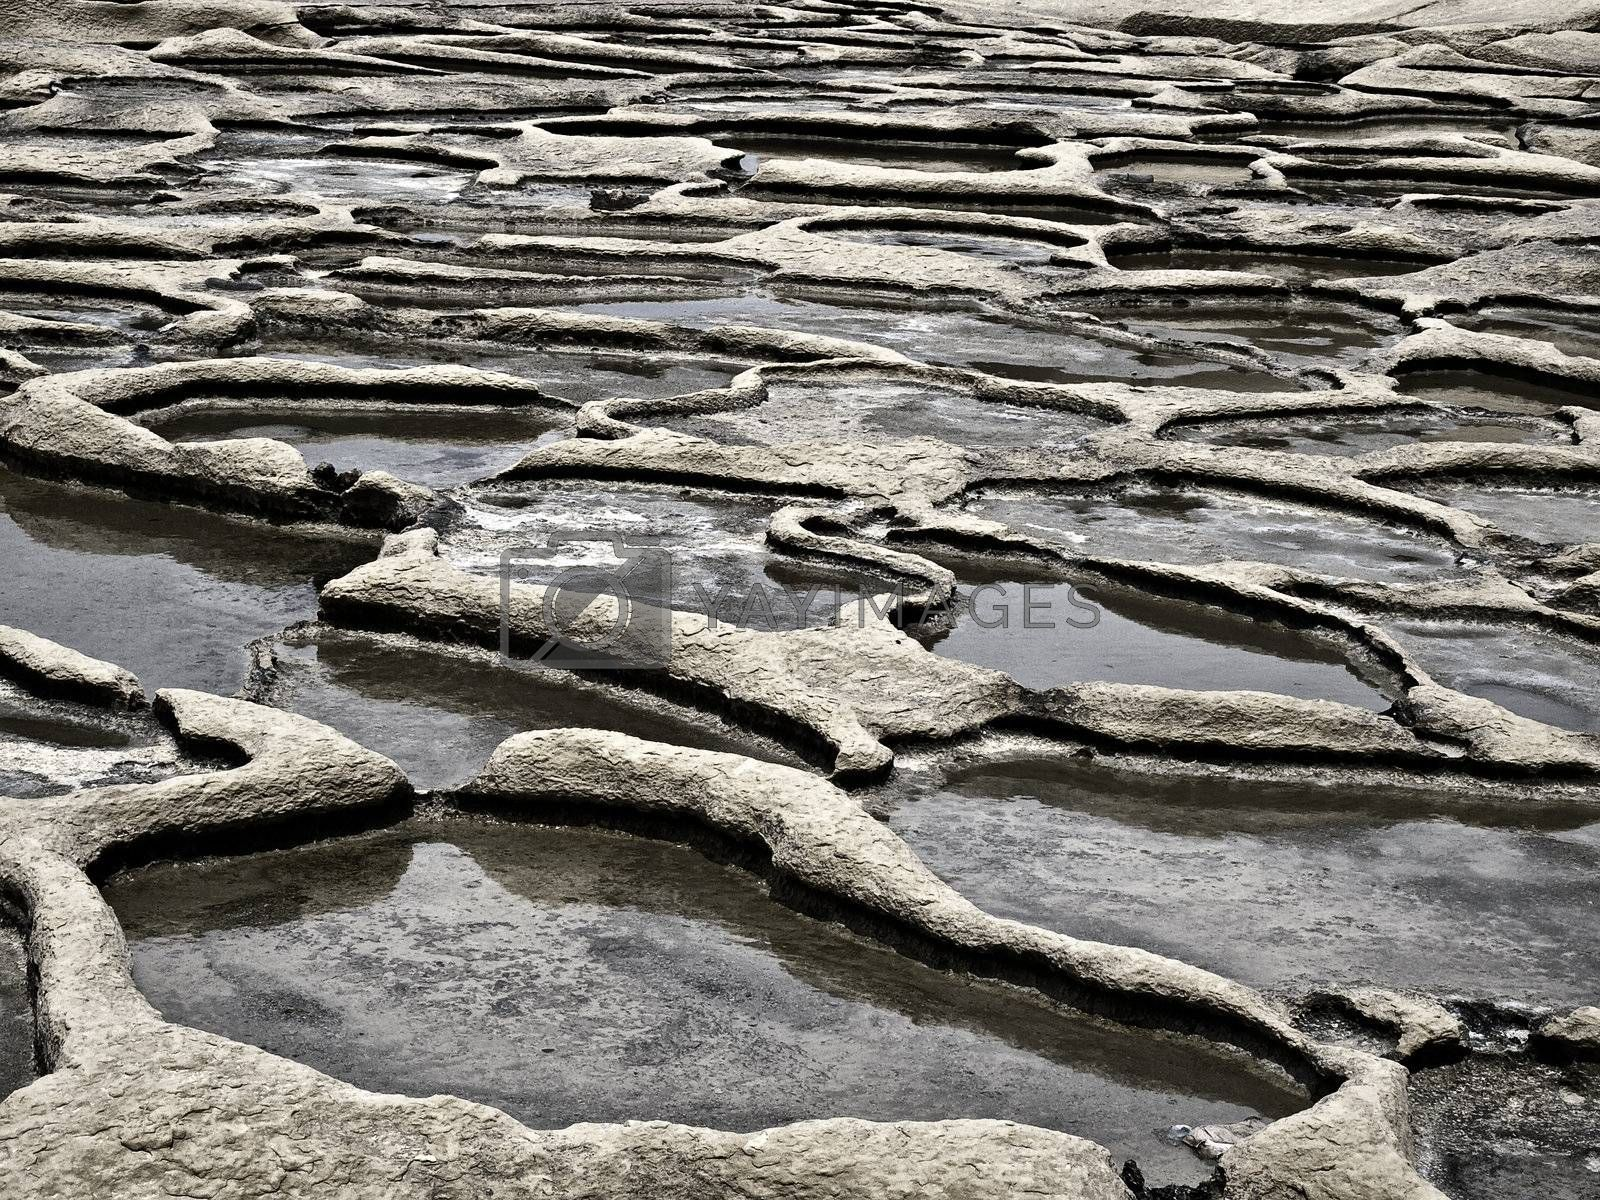 Royalty free image of Saltpans by PhotoWorks